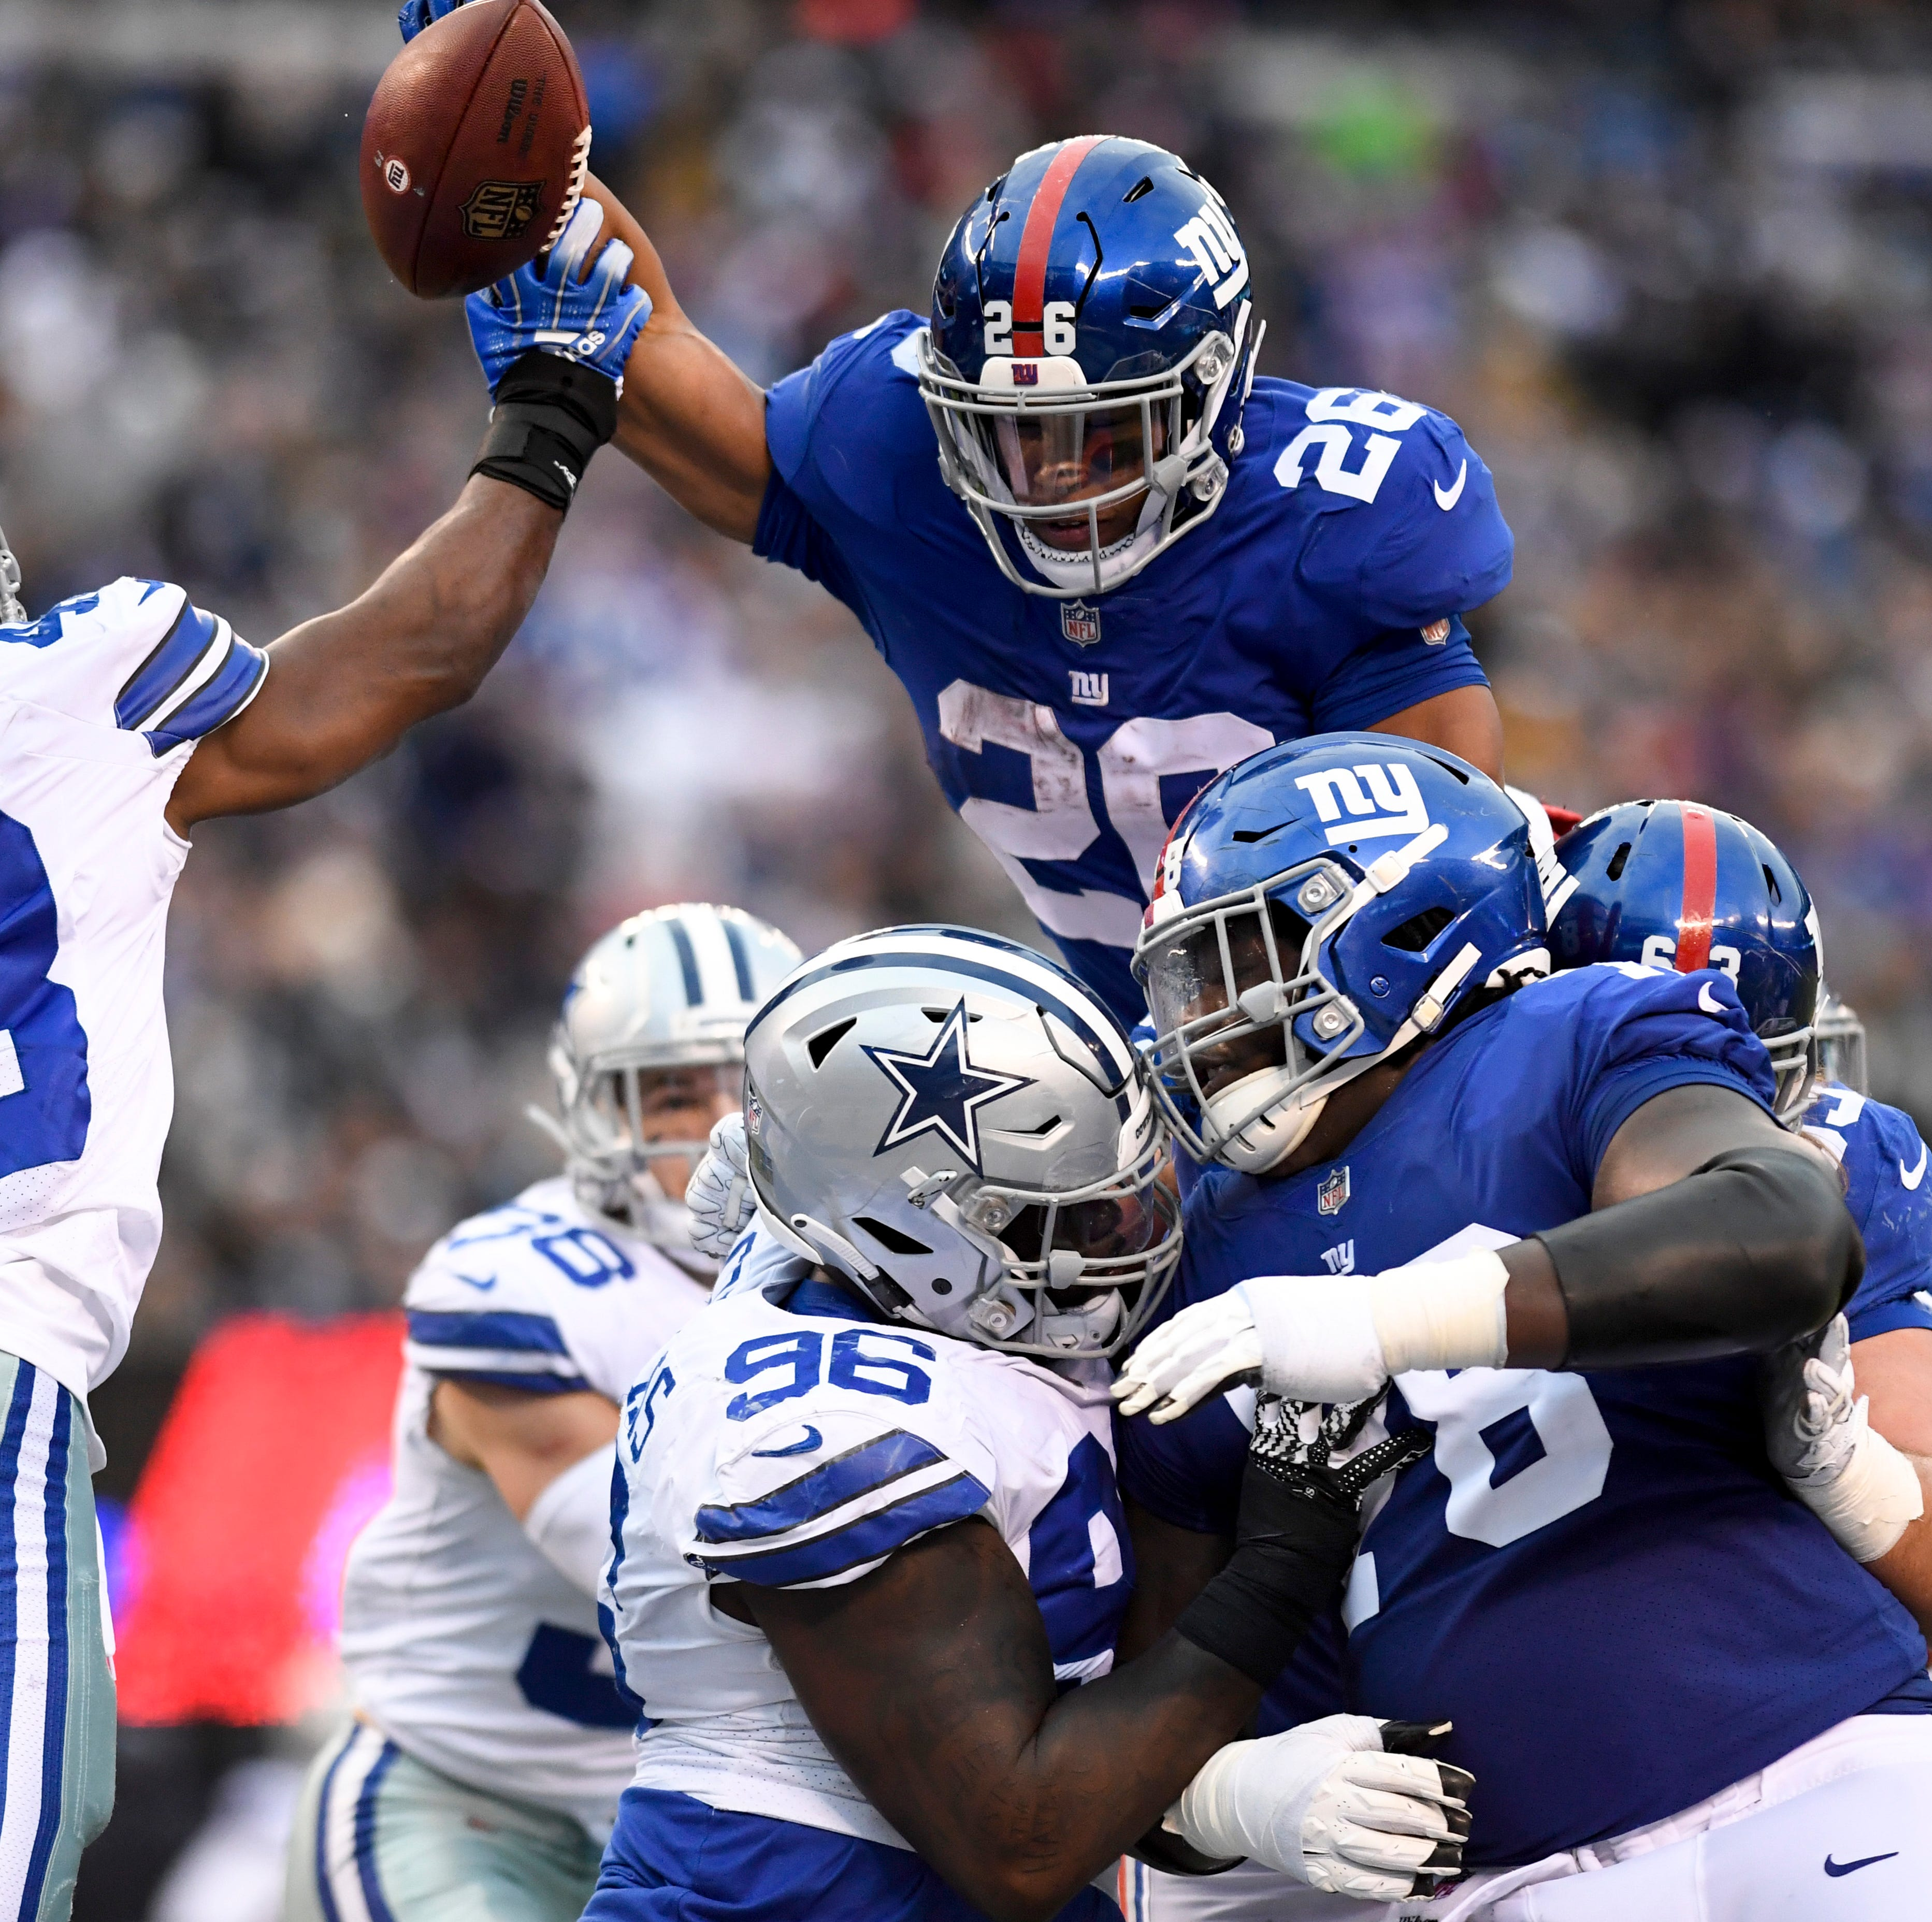 NY Giants running back Saquon Barkley wins PFWA Offensive Rookie of the Year